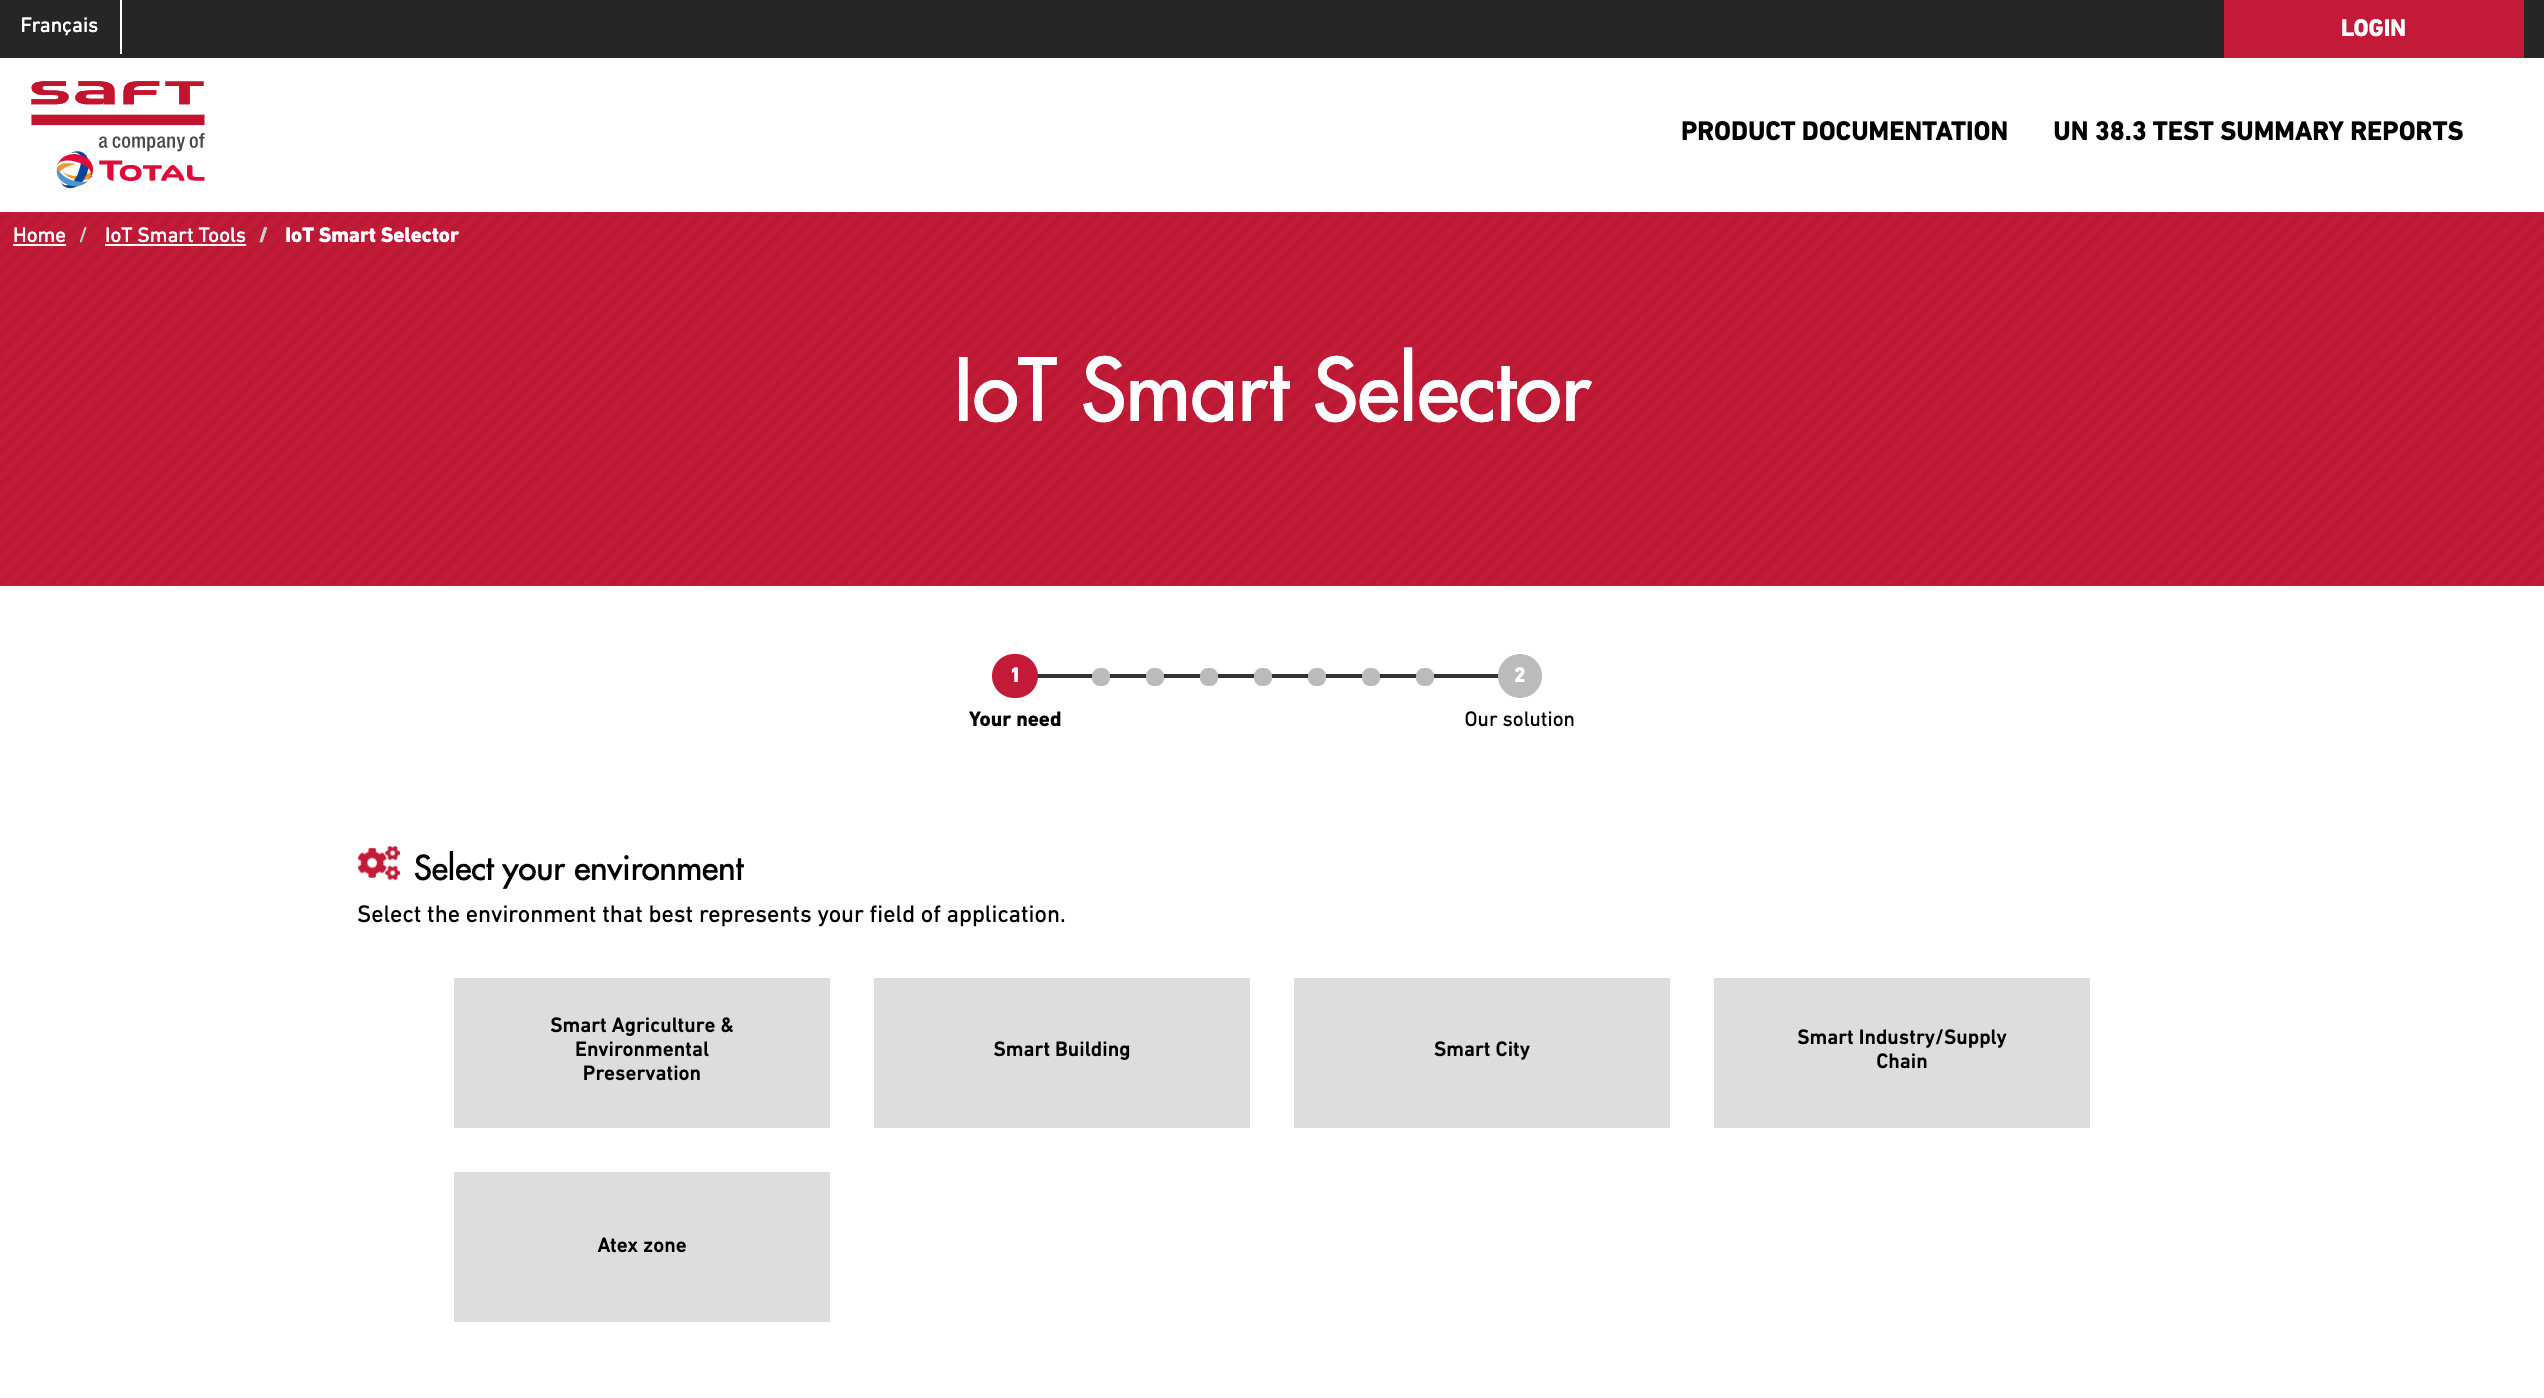 Smart Selector Tool for IoT solutions